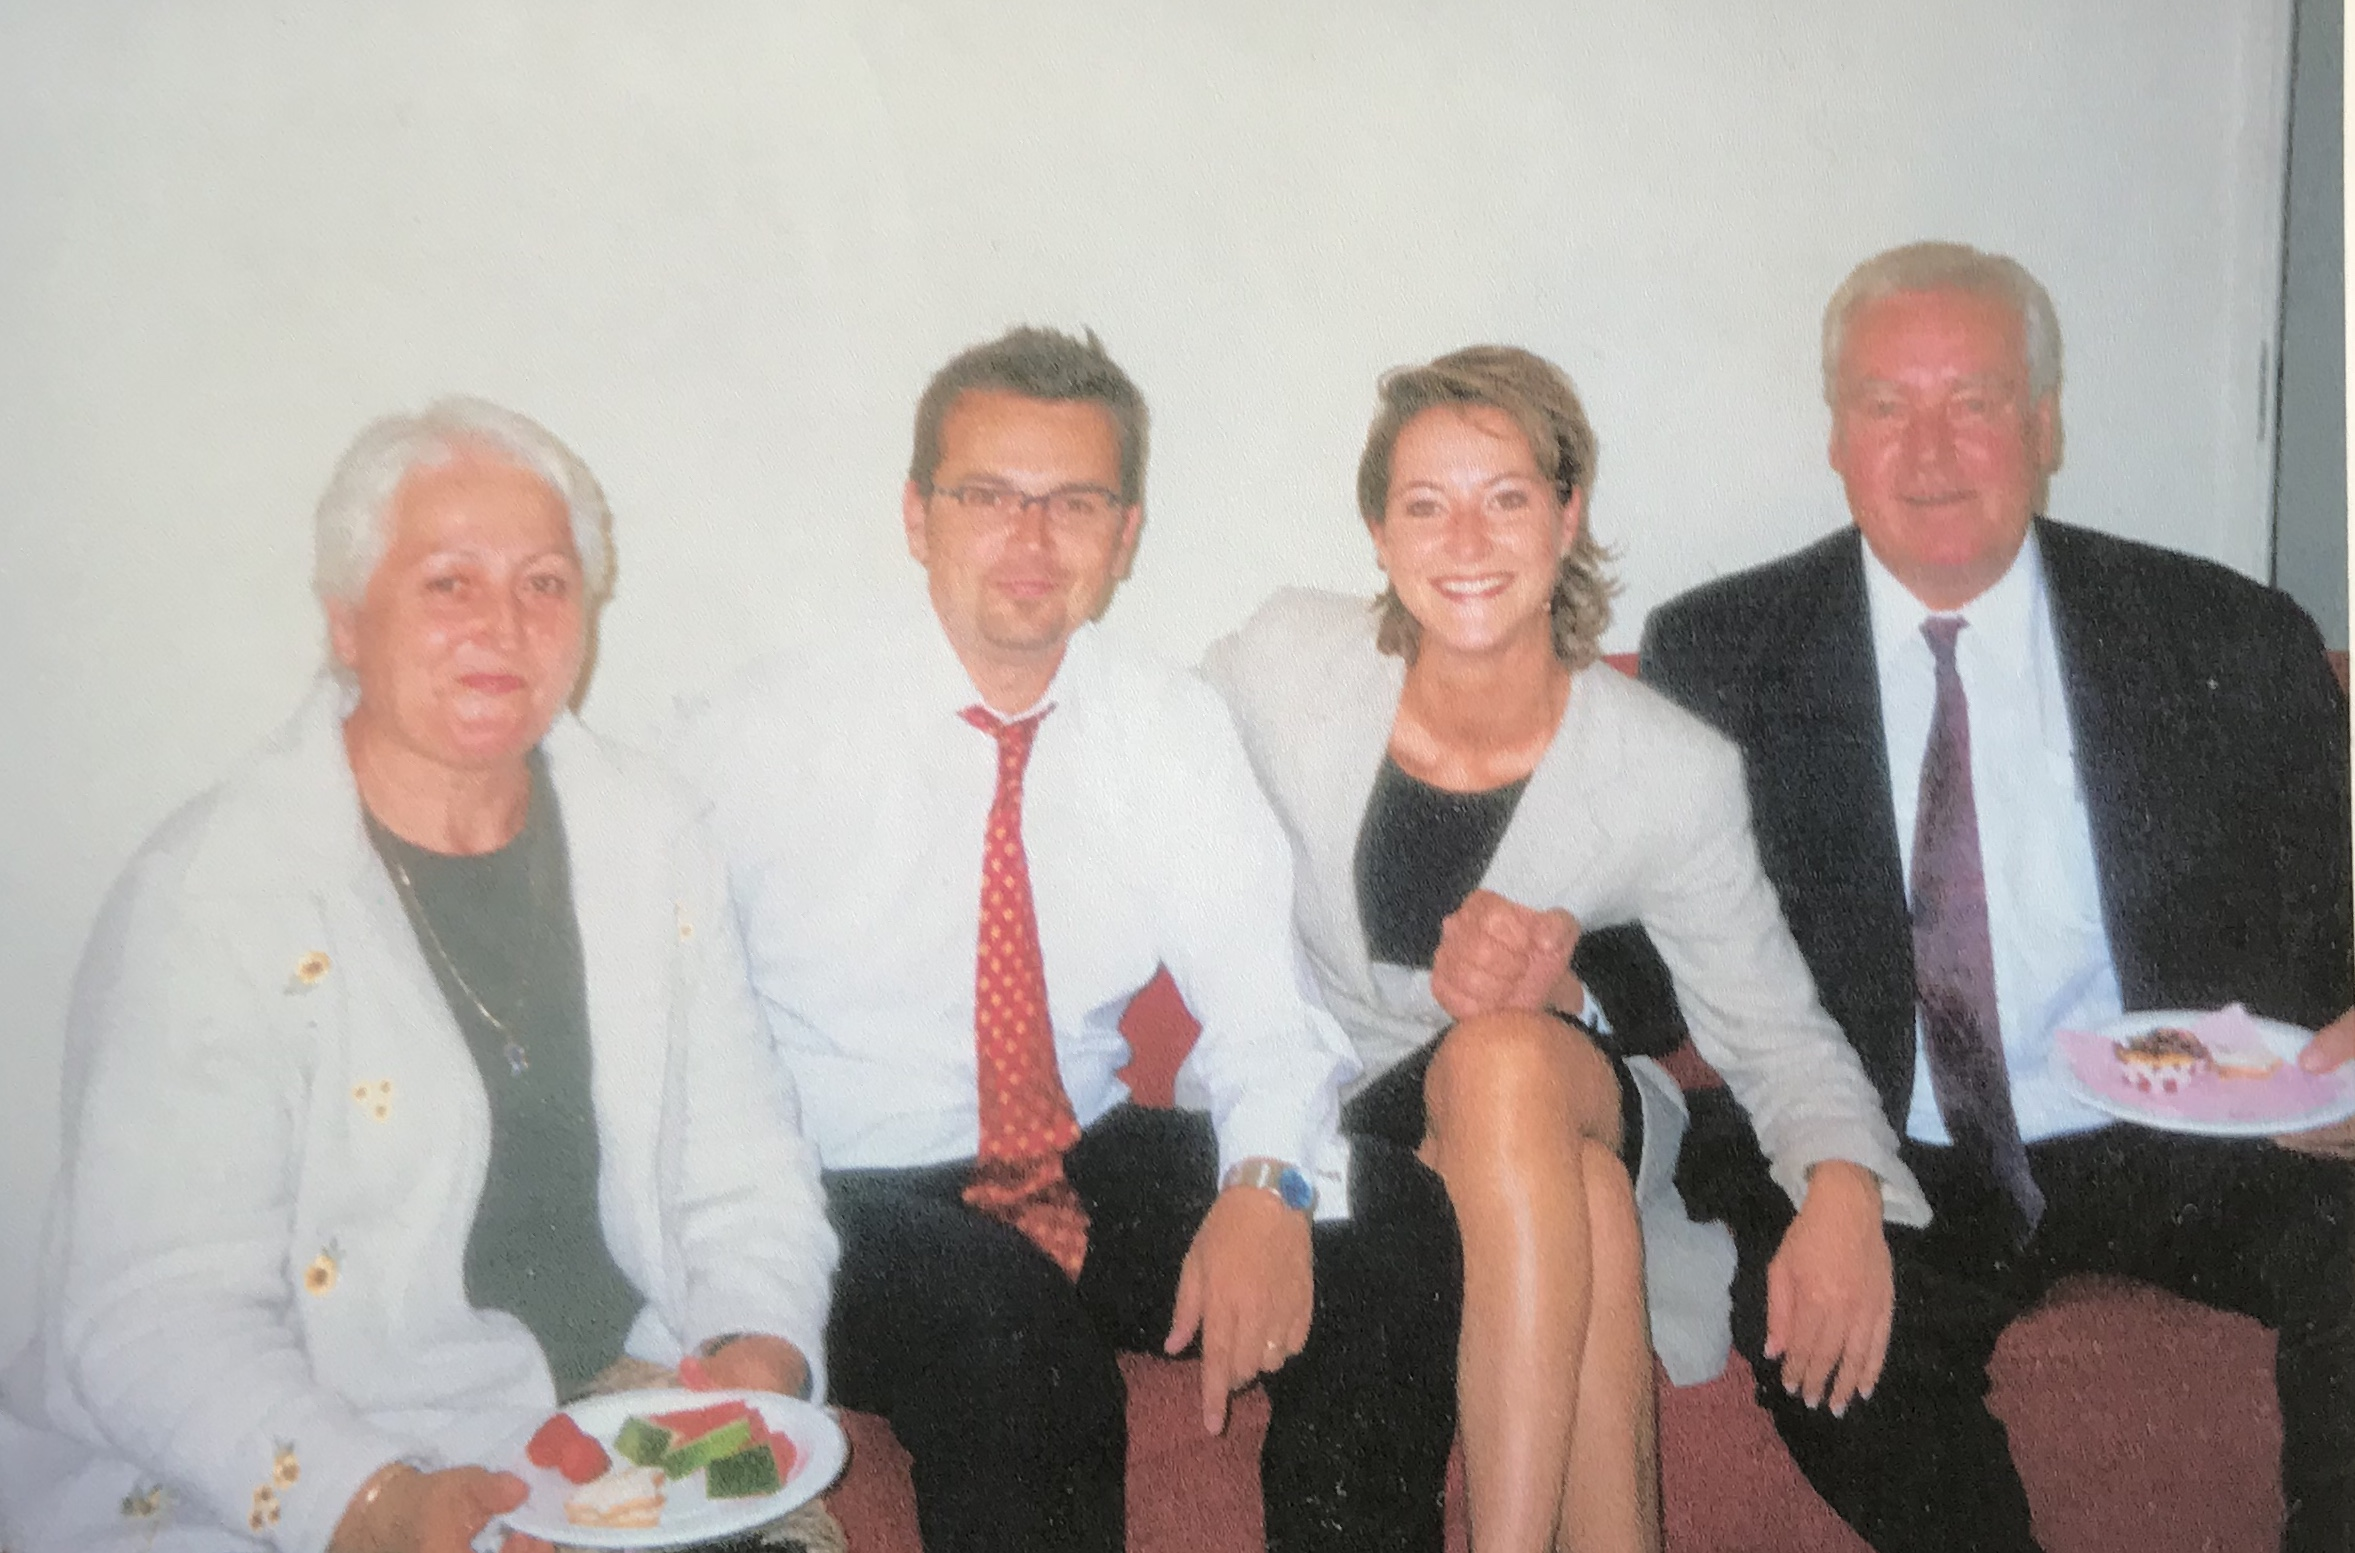 The first time (and last time) our family was re-united after my parents divorced in 1988. My mum Mira, my brother Daniel, me and my dad Zlatko in 2002.